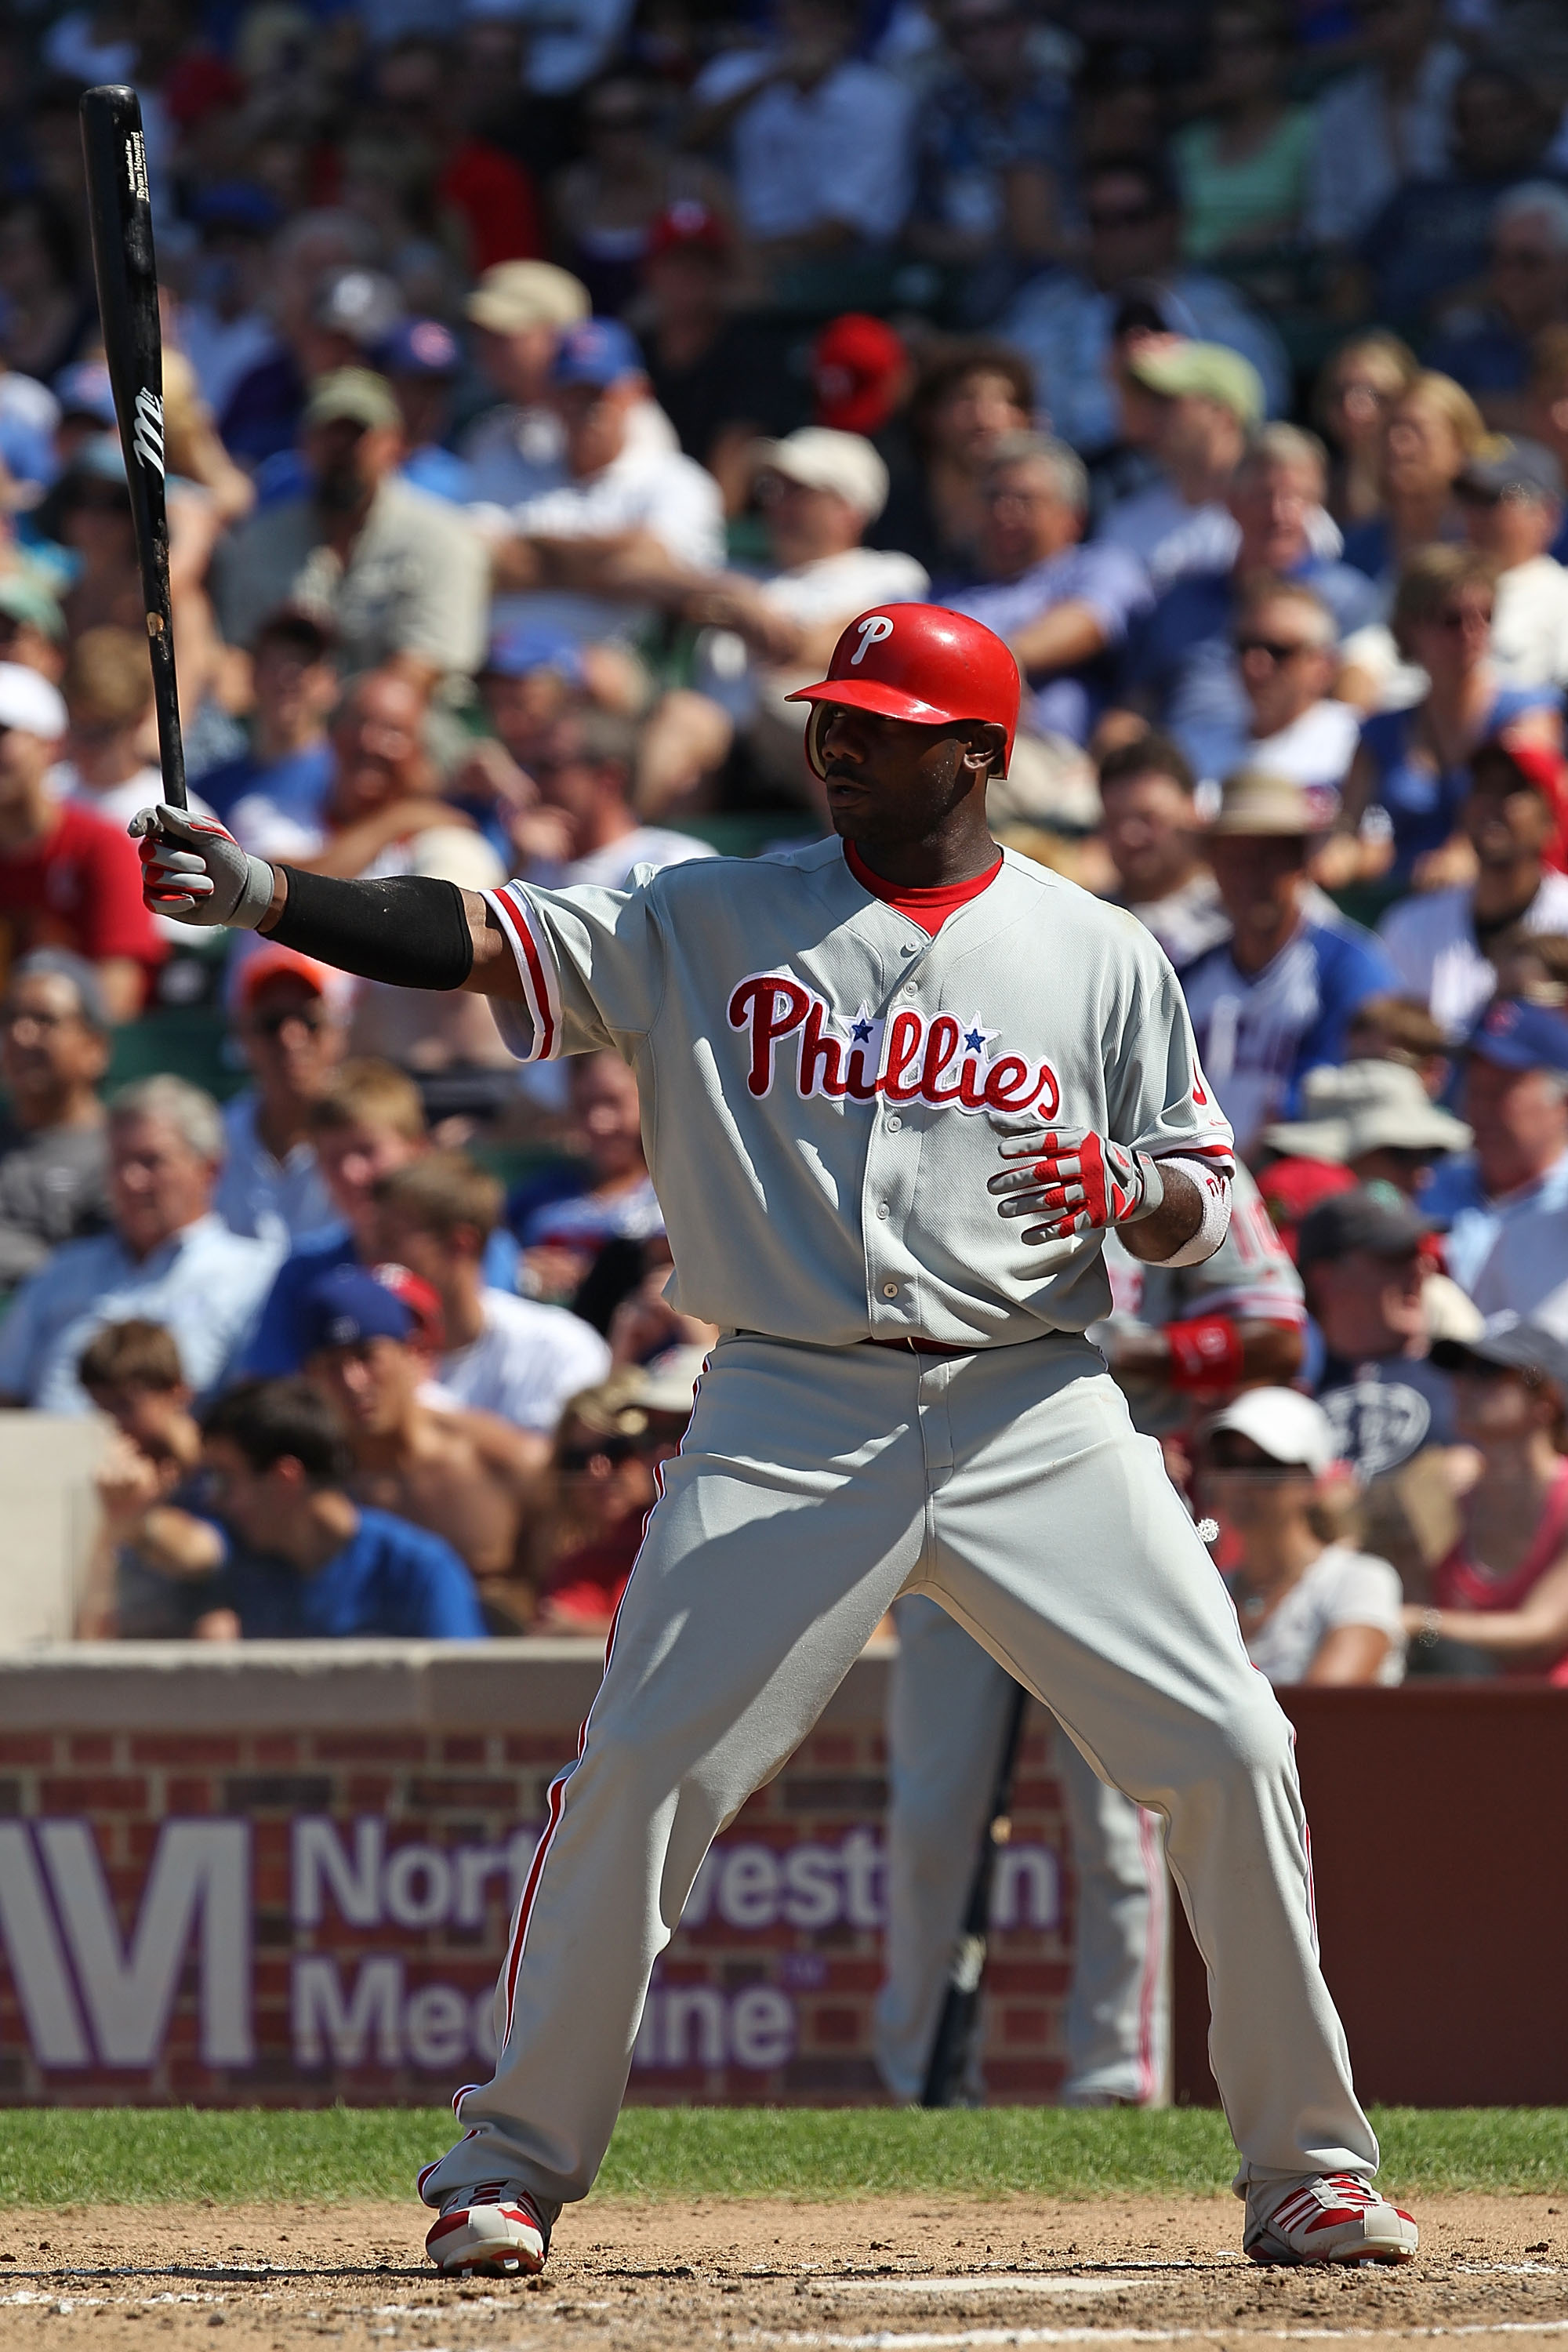 CHICAGO - JULY 16: Ryan Howard #6 of the Philadelphia Phillies waits to bat against the Chicago Cubs at Wrigley Field on July 16, 2010 in Chicago, Illinois. The Cubs defeated the Phillies 4-3. (Photo by Jonathan Daniel/Getty Images)